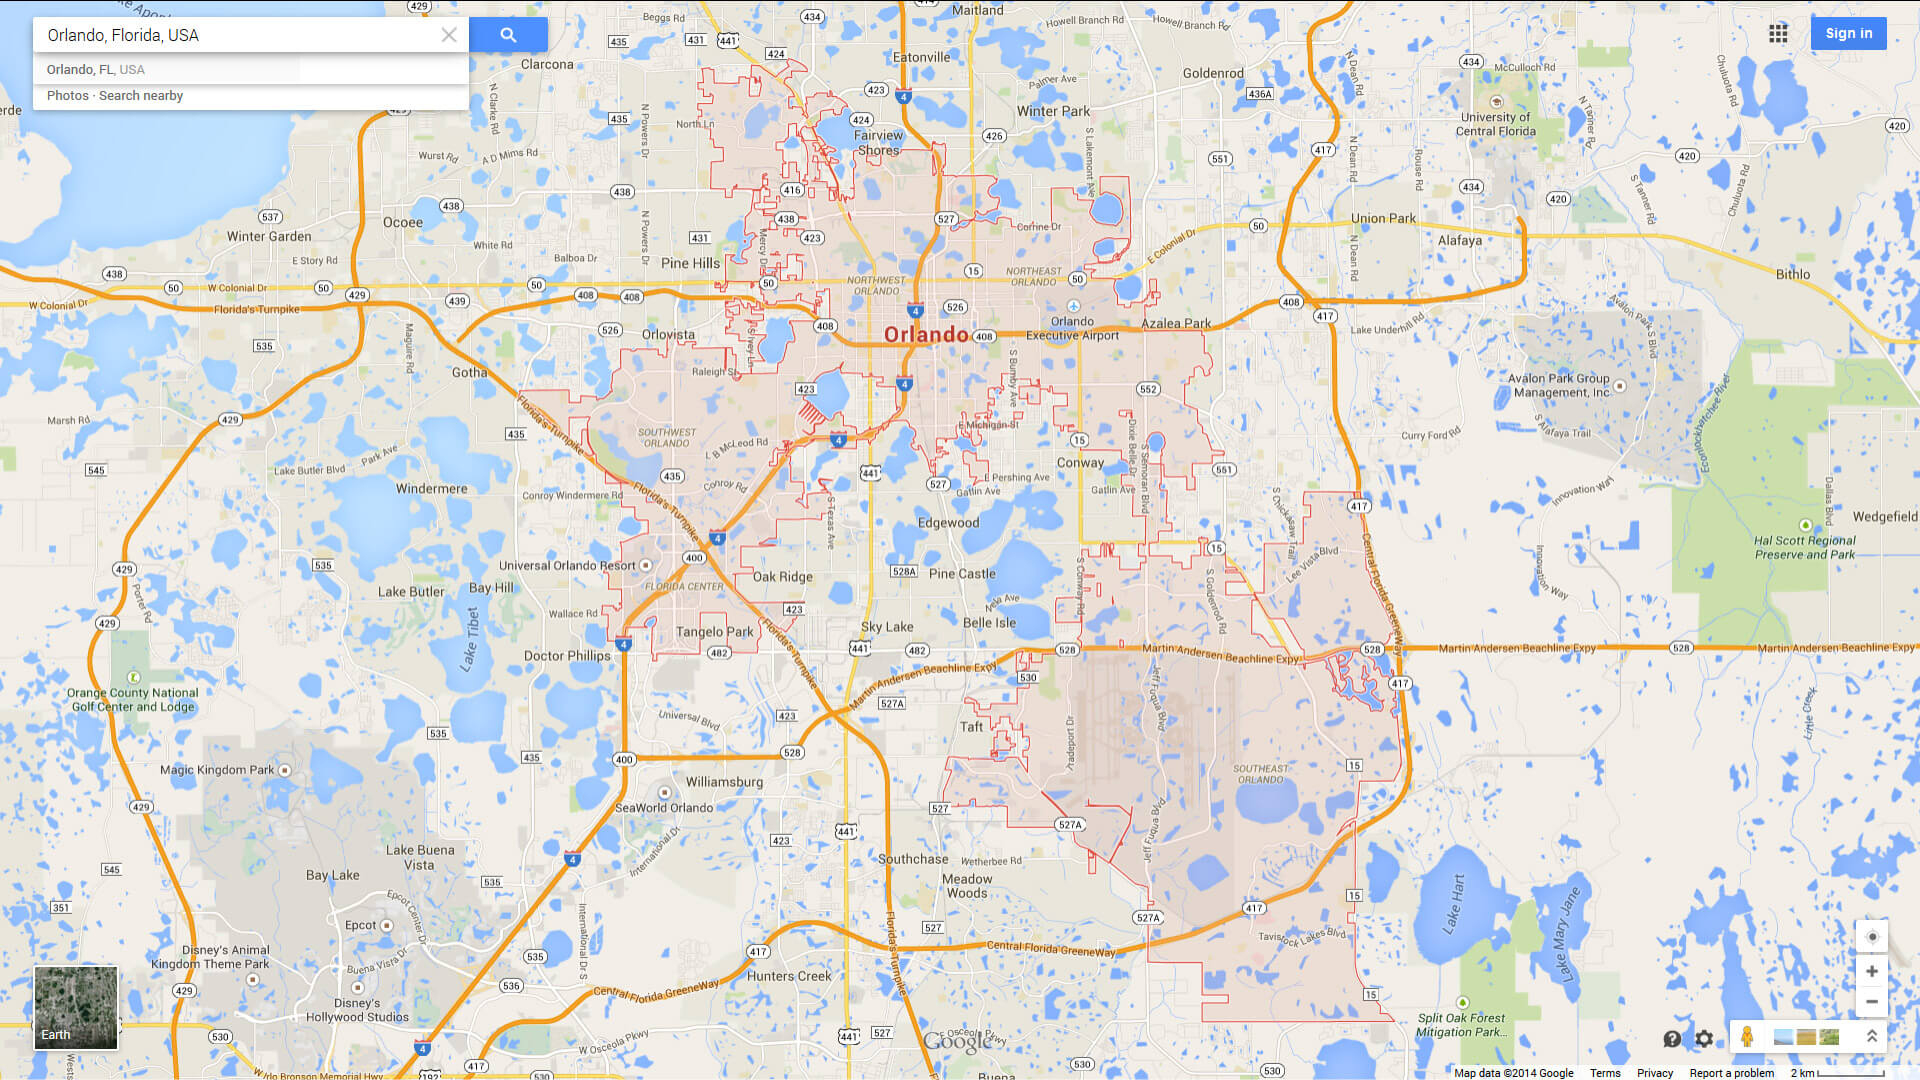 Orlando, Florida Map - Detailed Map Of Orlando Florida